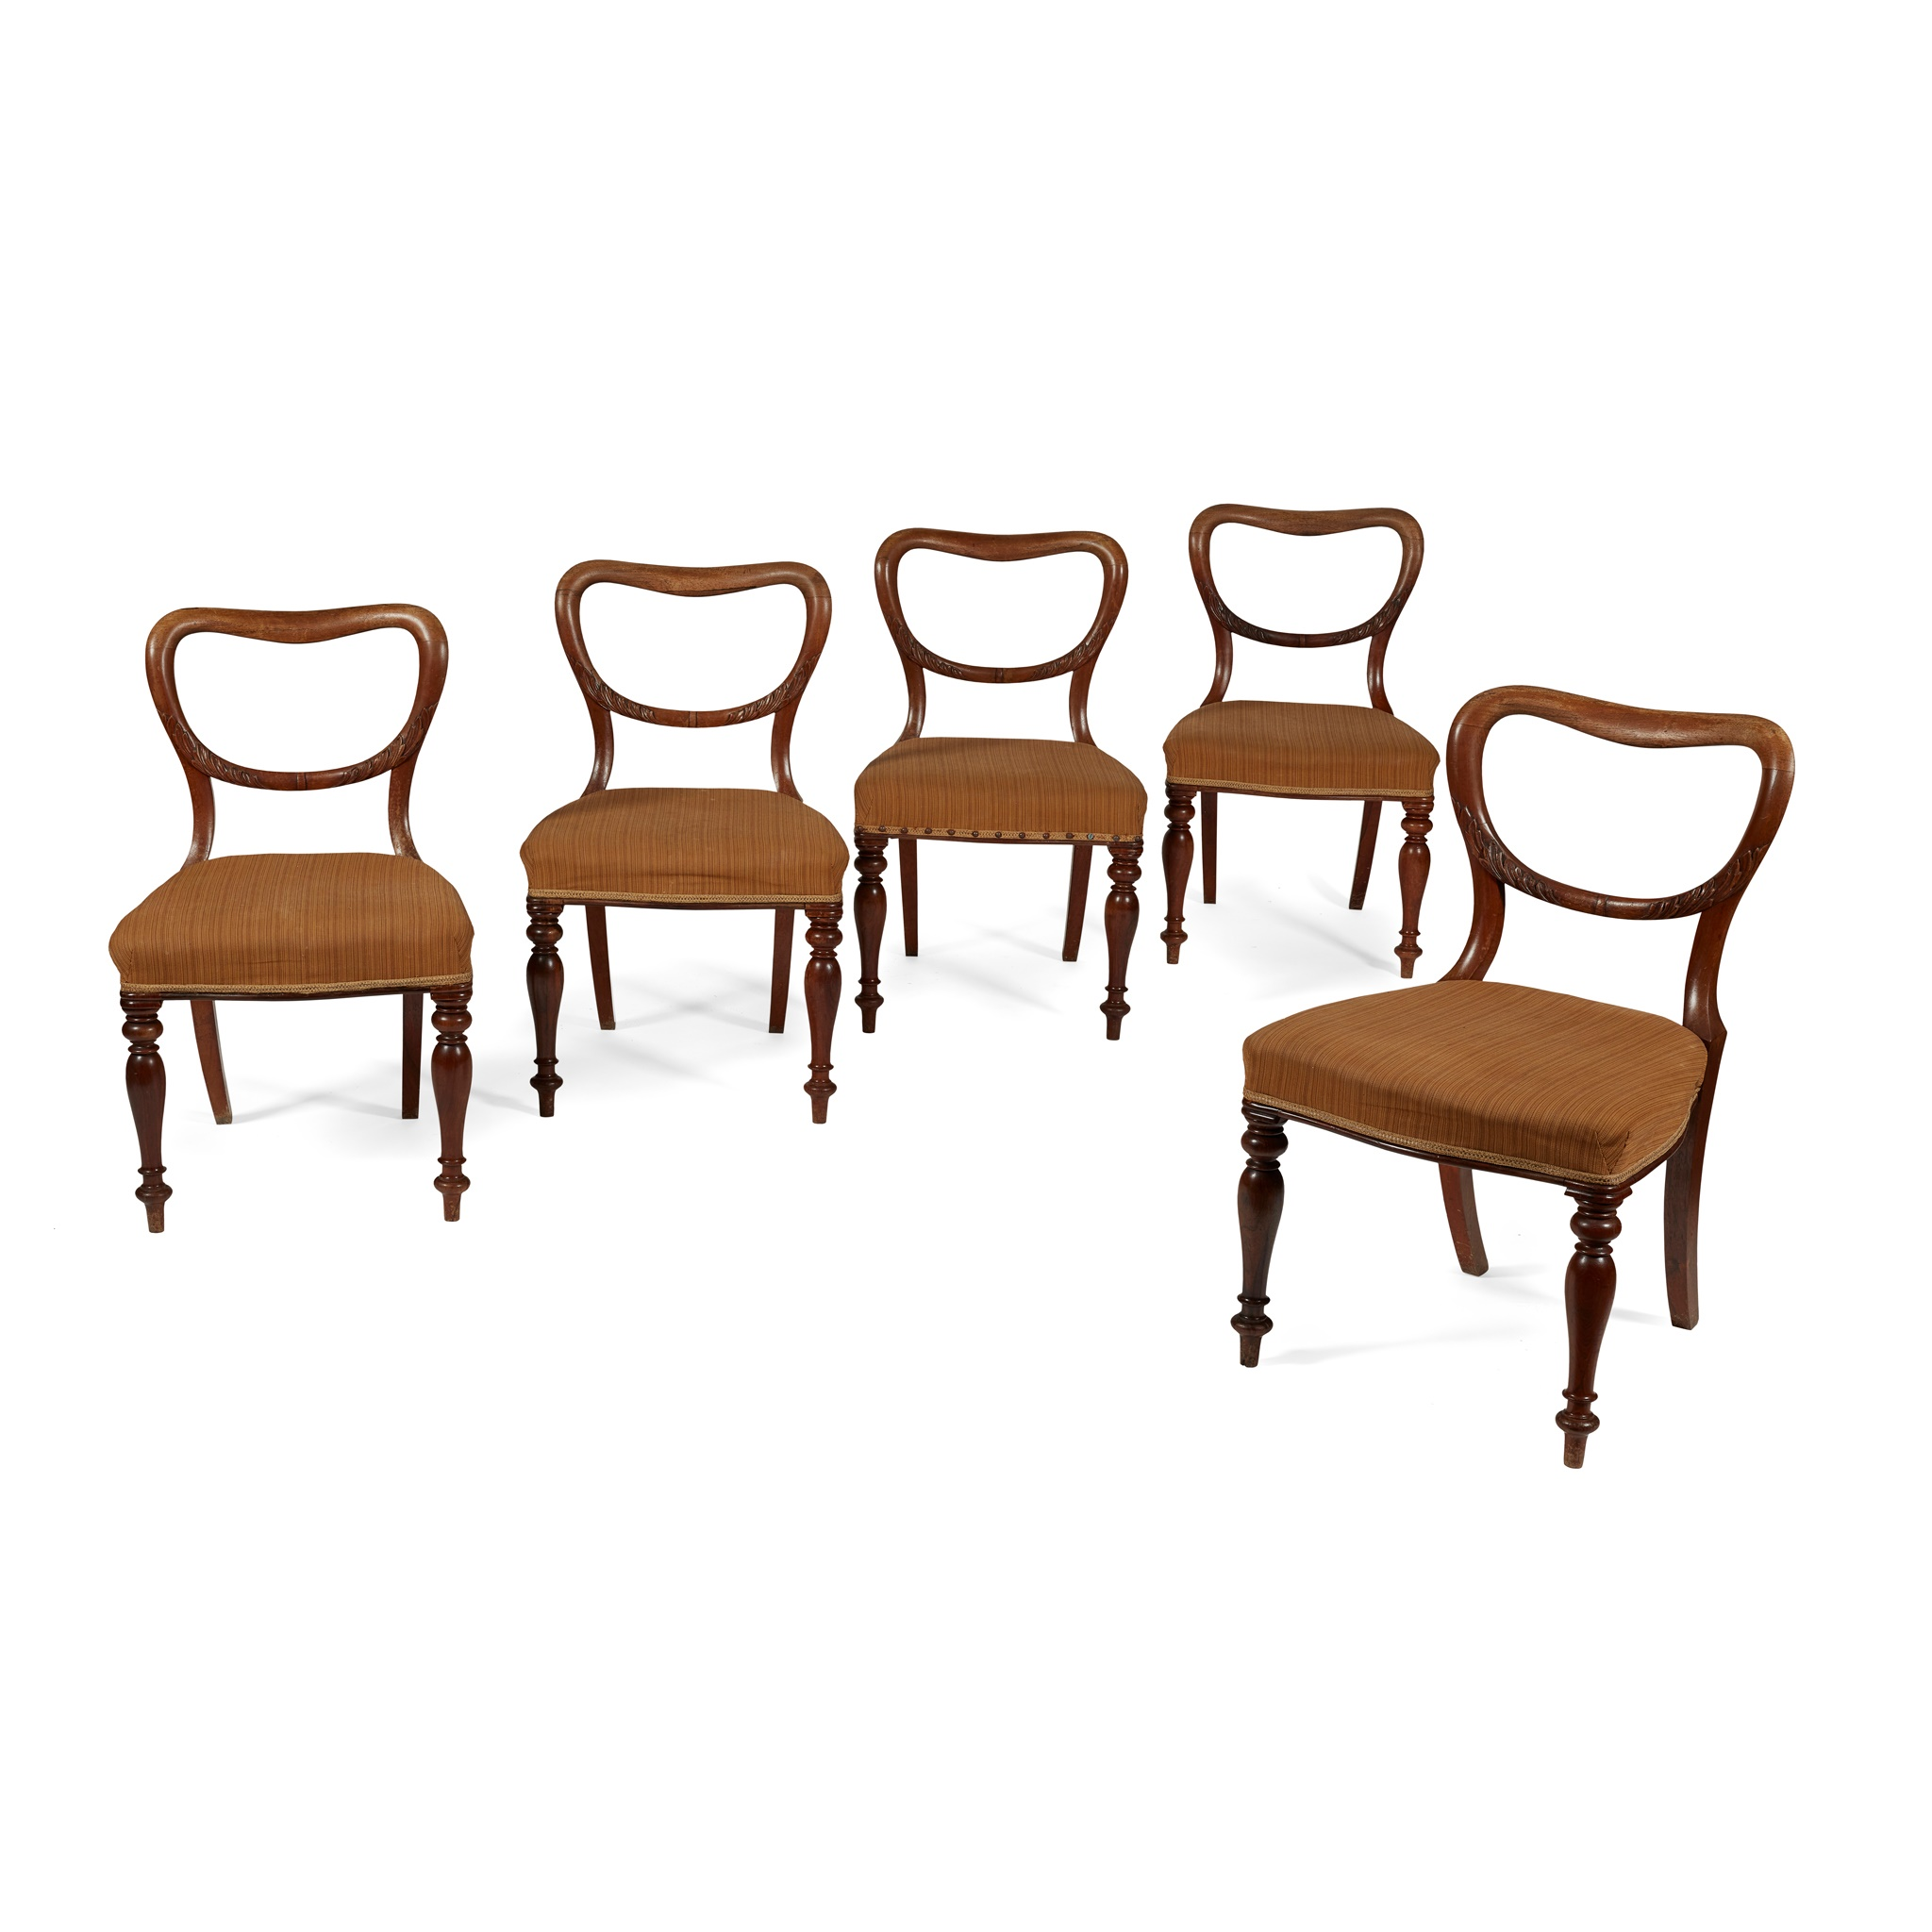 SET OF FIVE VICTORIAN MAHOGANY BALLOON BACK DINING CHAIRS MID 19TH CENTURY